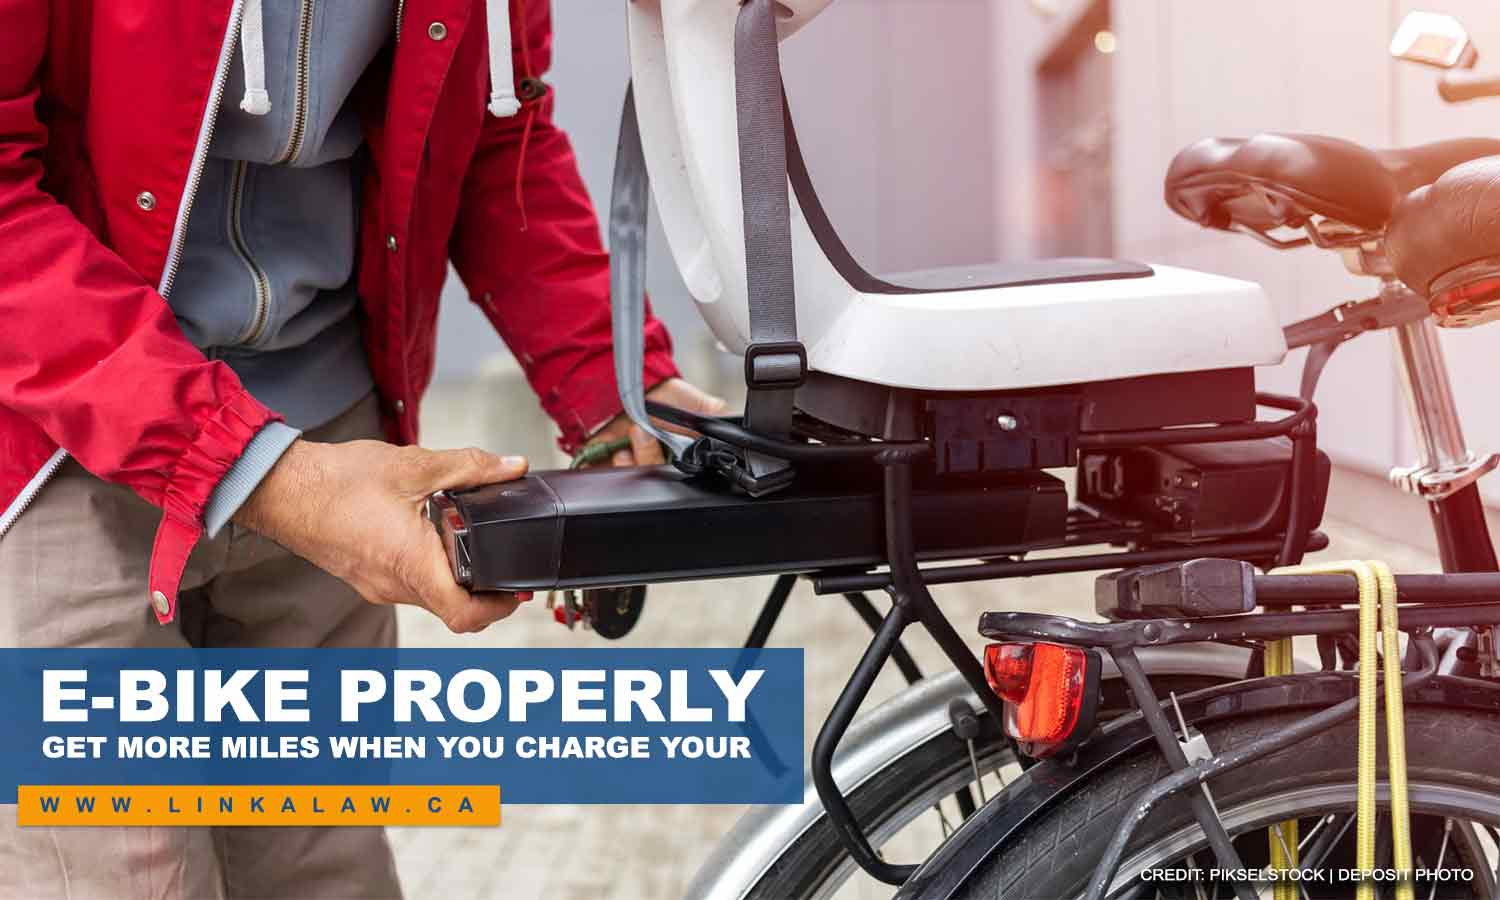 Get more miles when you charge your e-bike properly